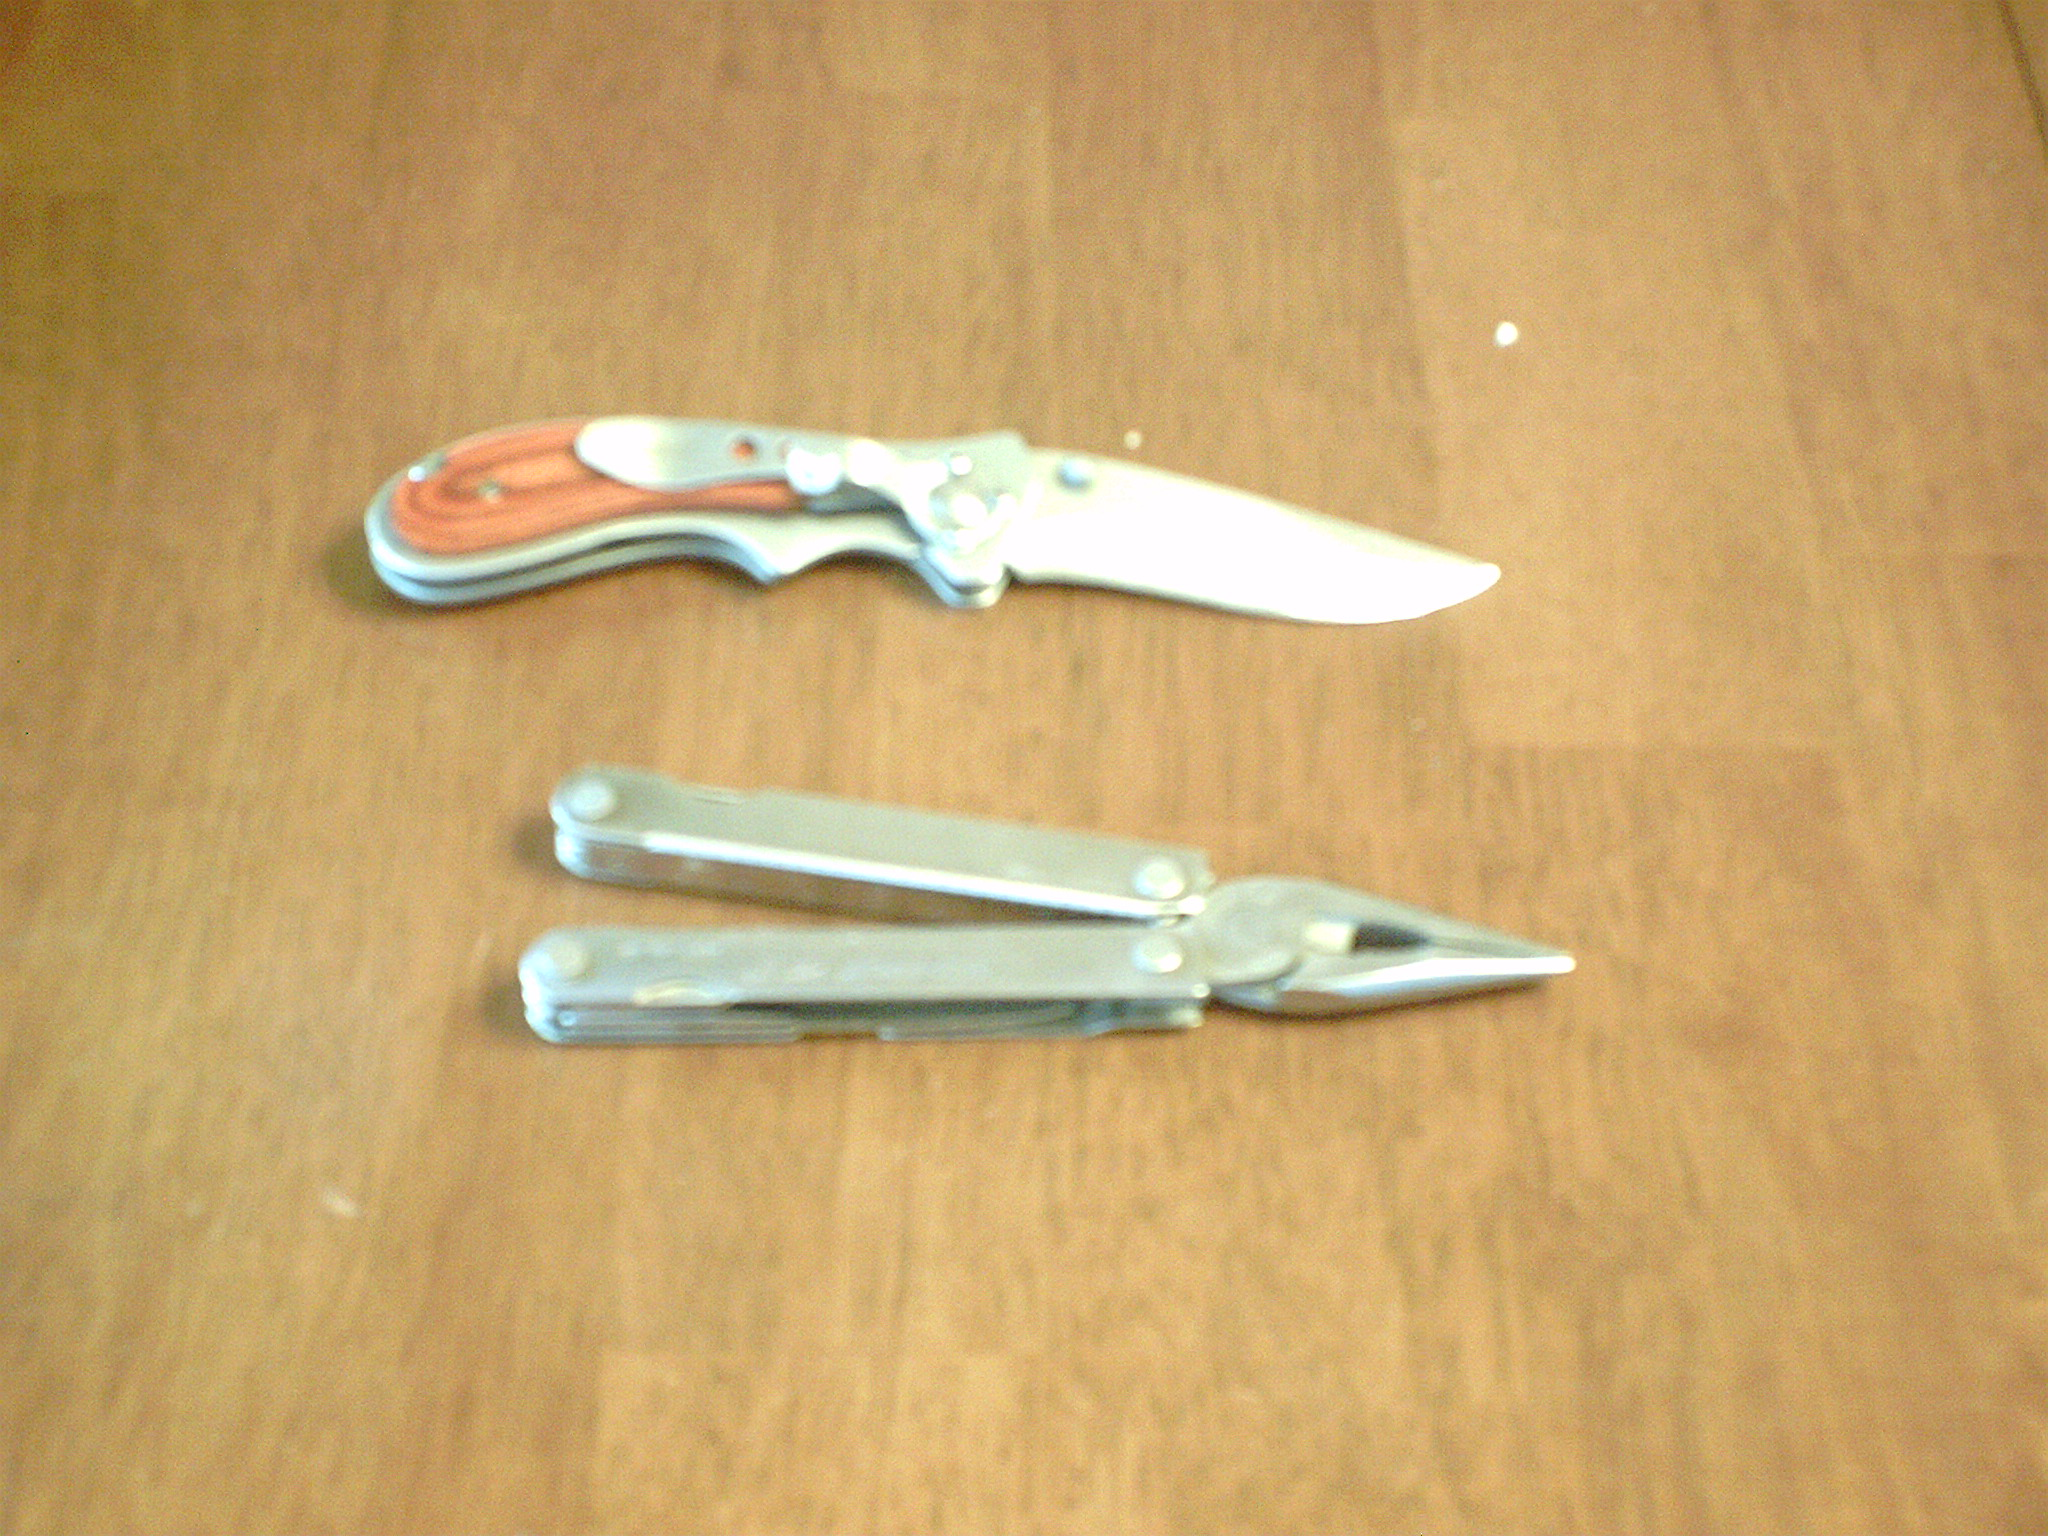 Picture of Choose at Least One Good Knife to Bring